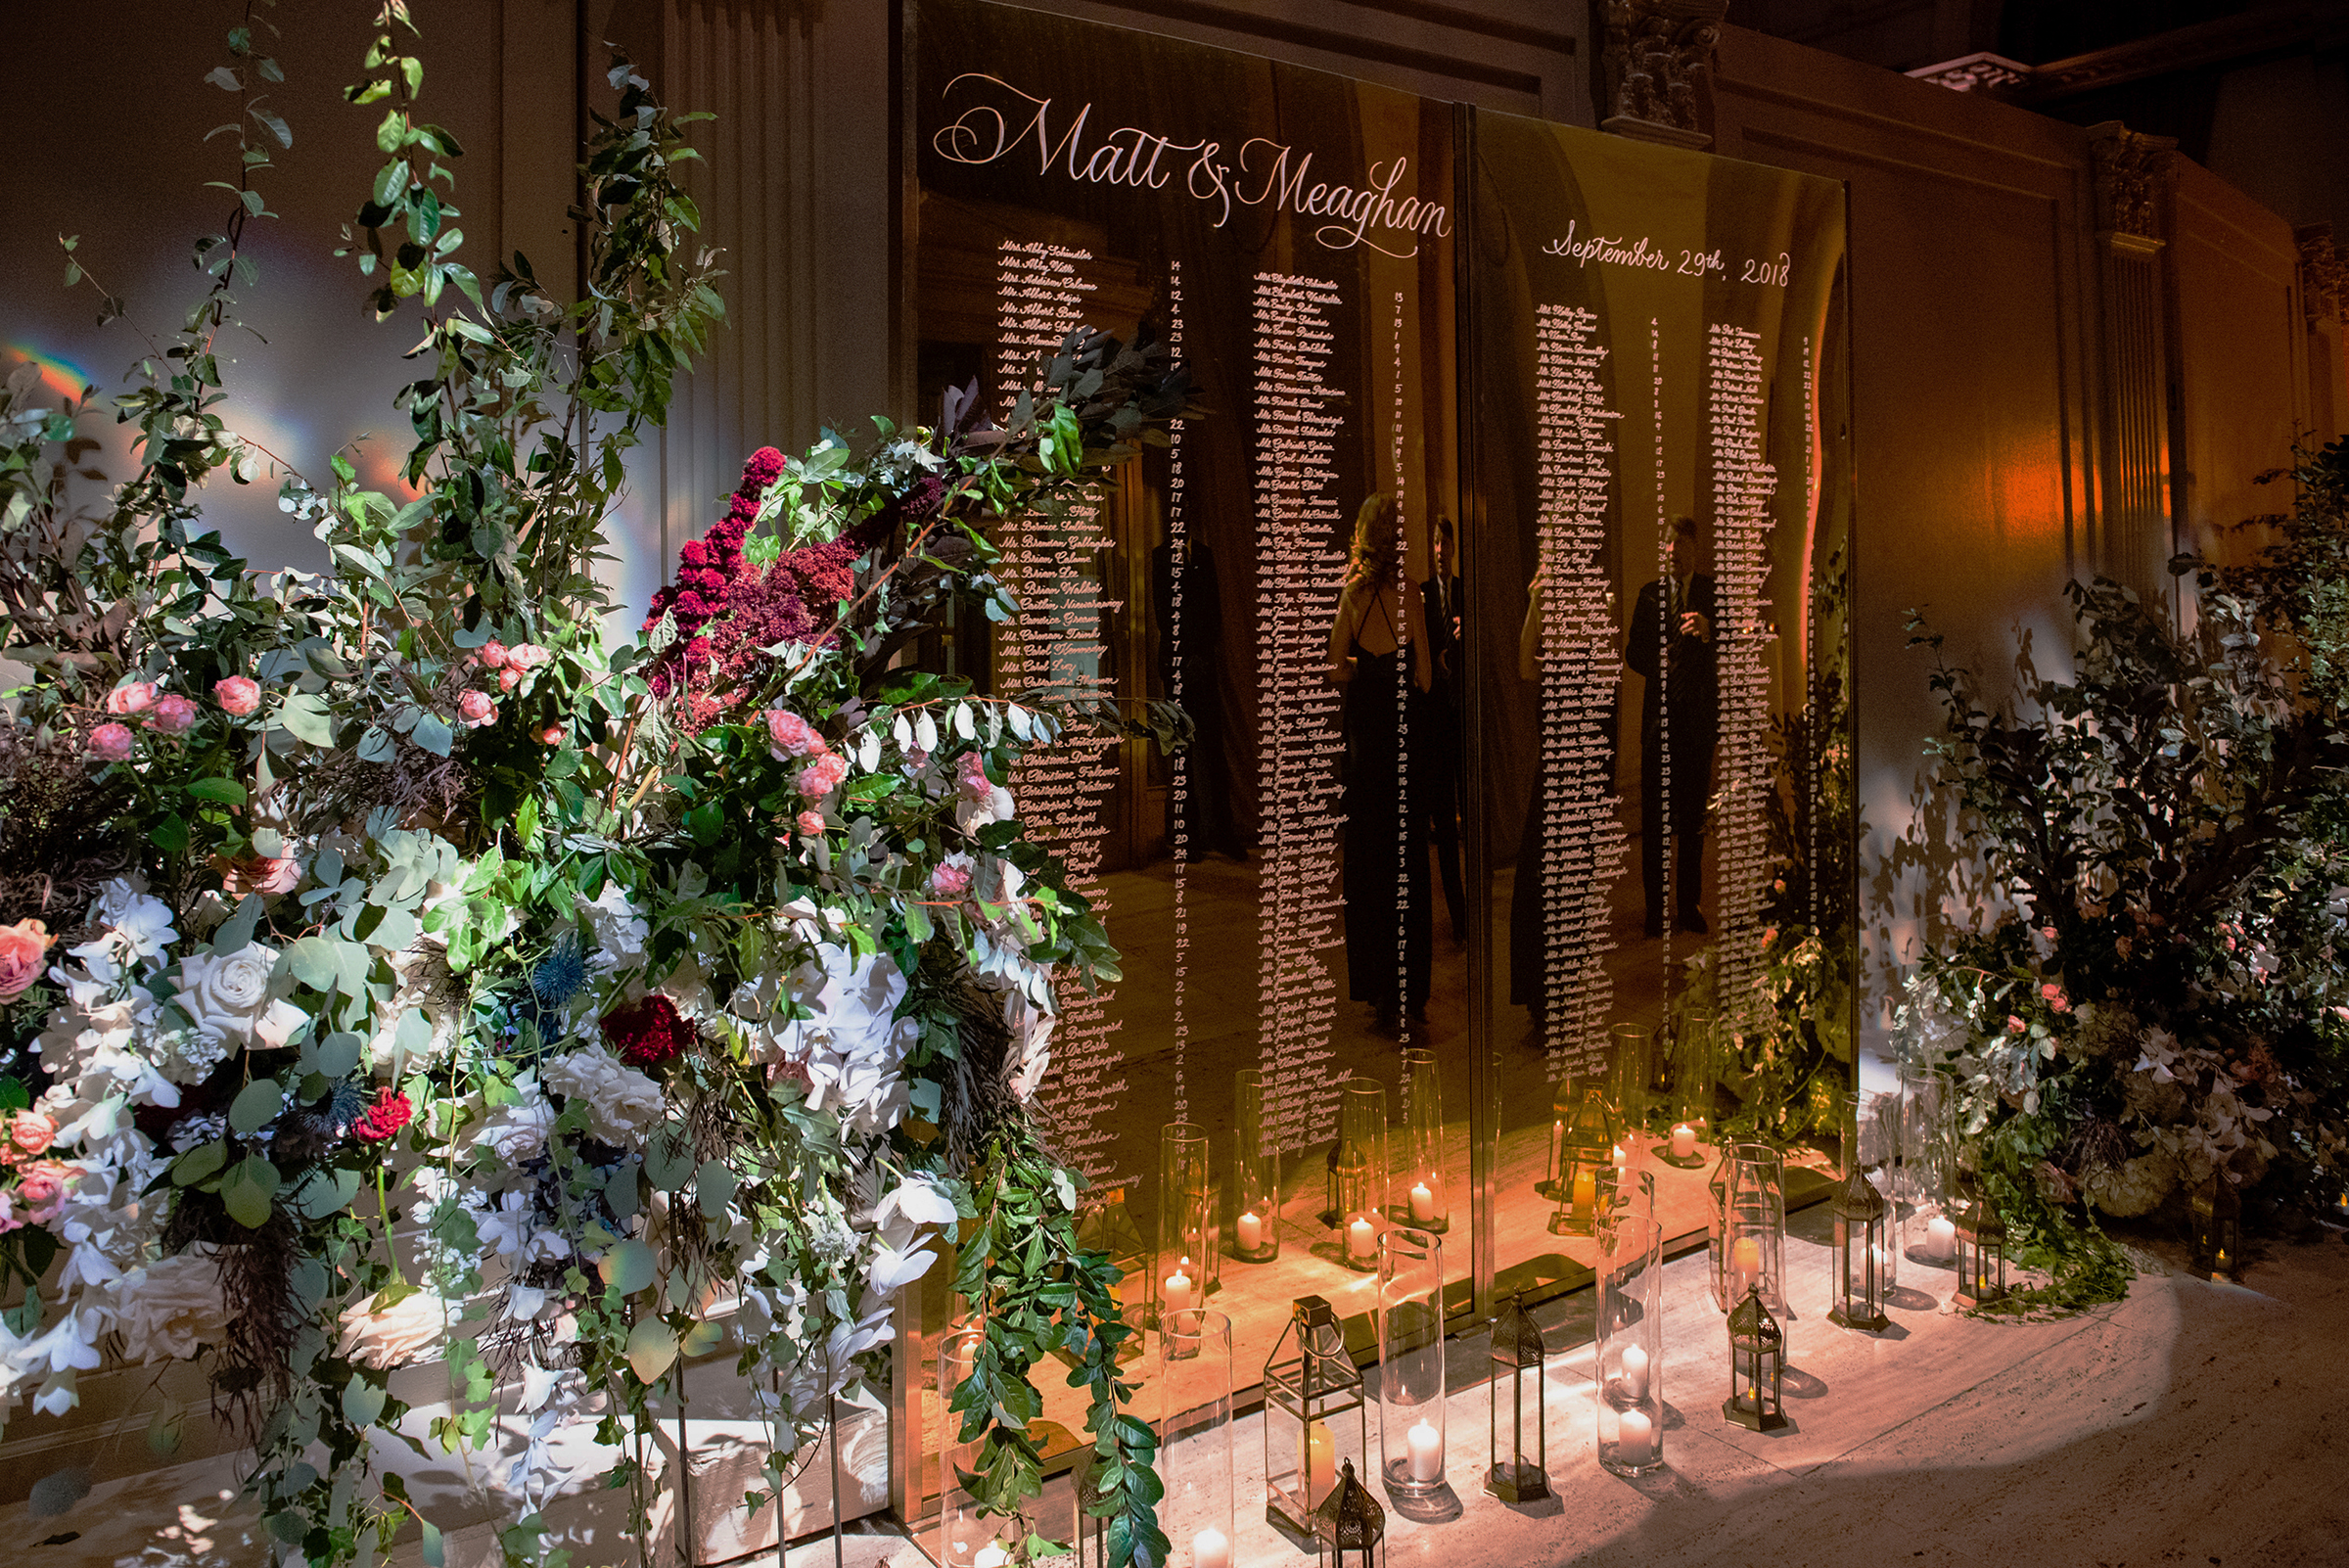 Cipriani Wall Street Wedding: Mirrored Seating Chart in calligraphy   by www.chavelli.com